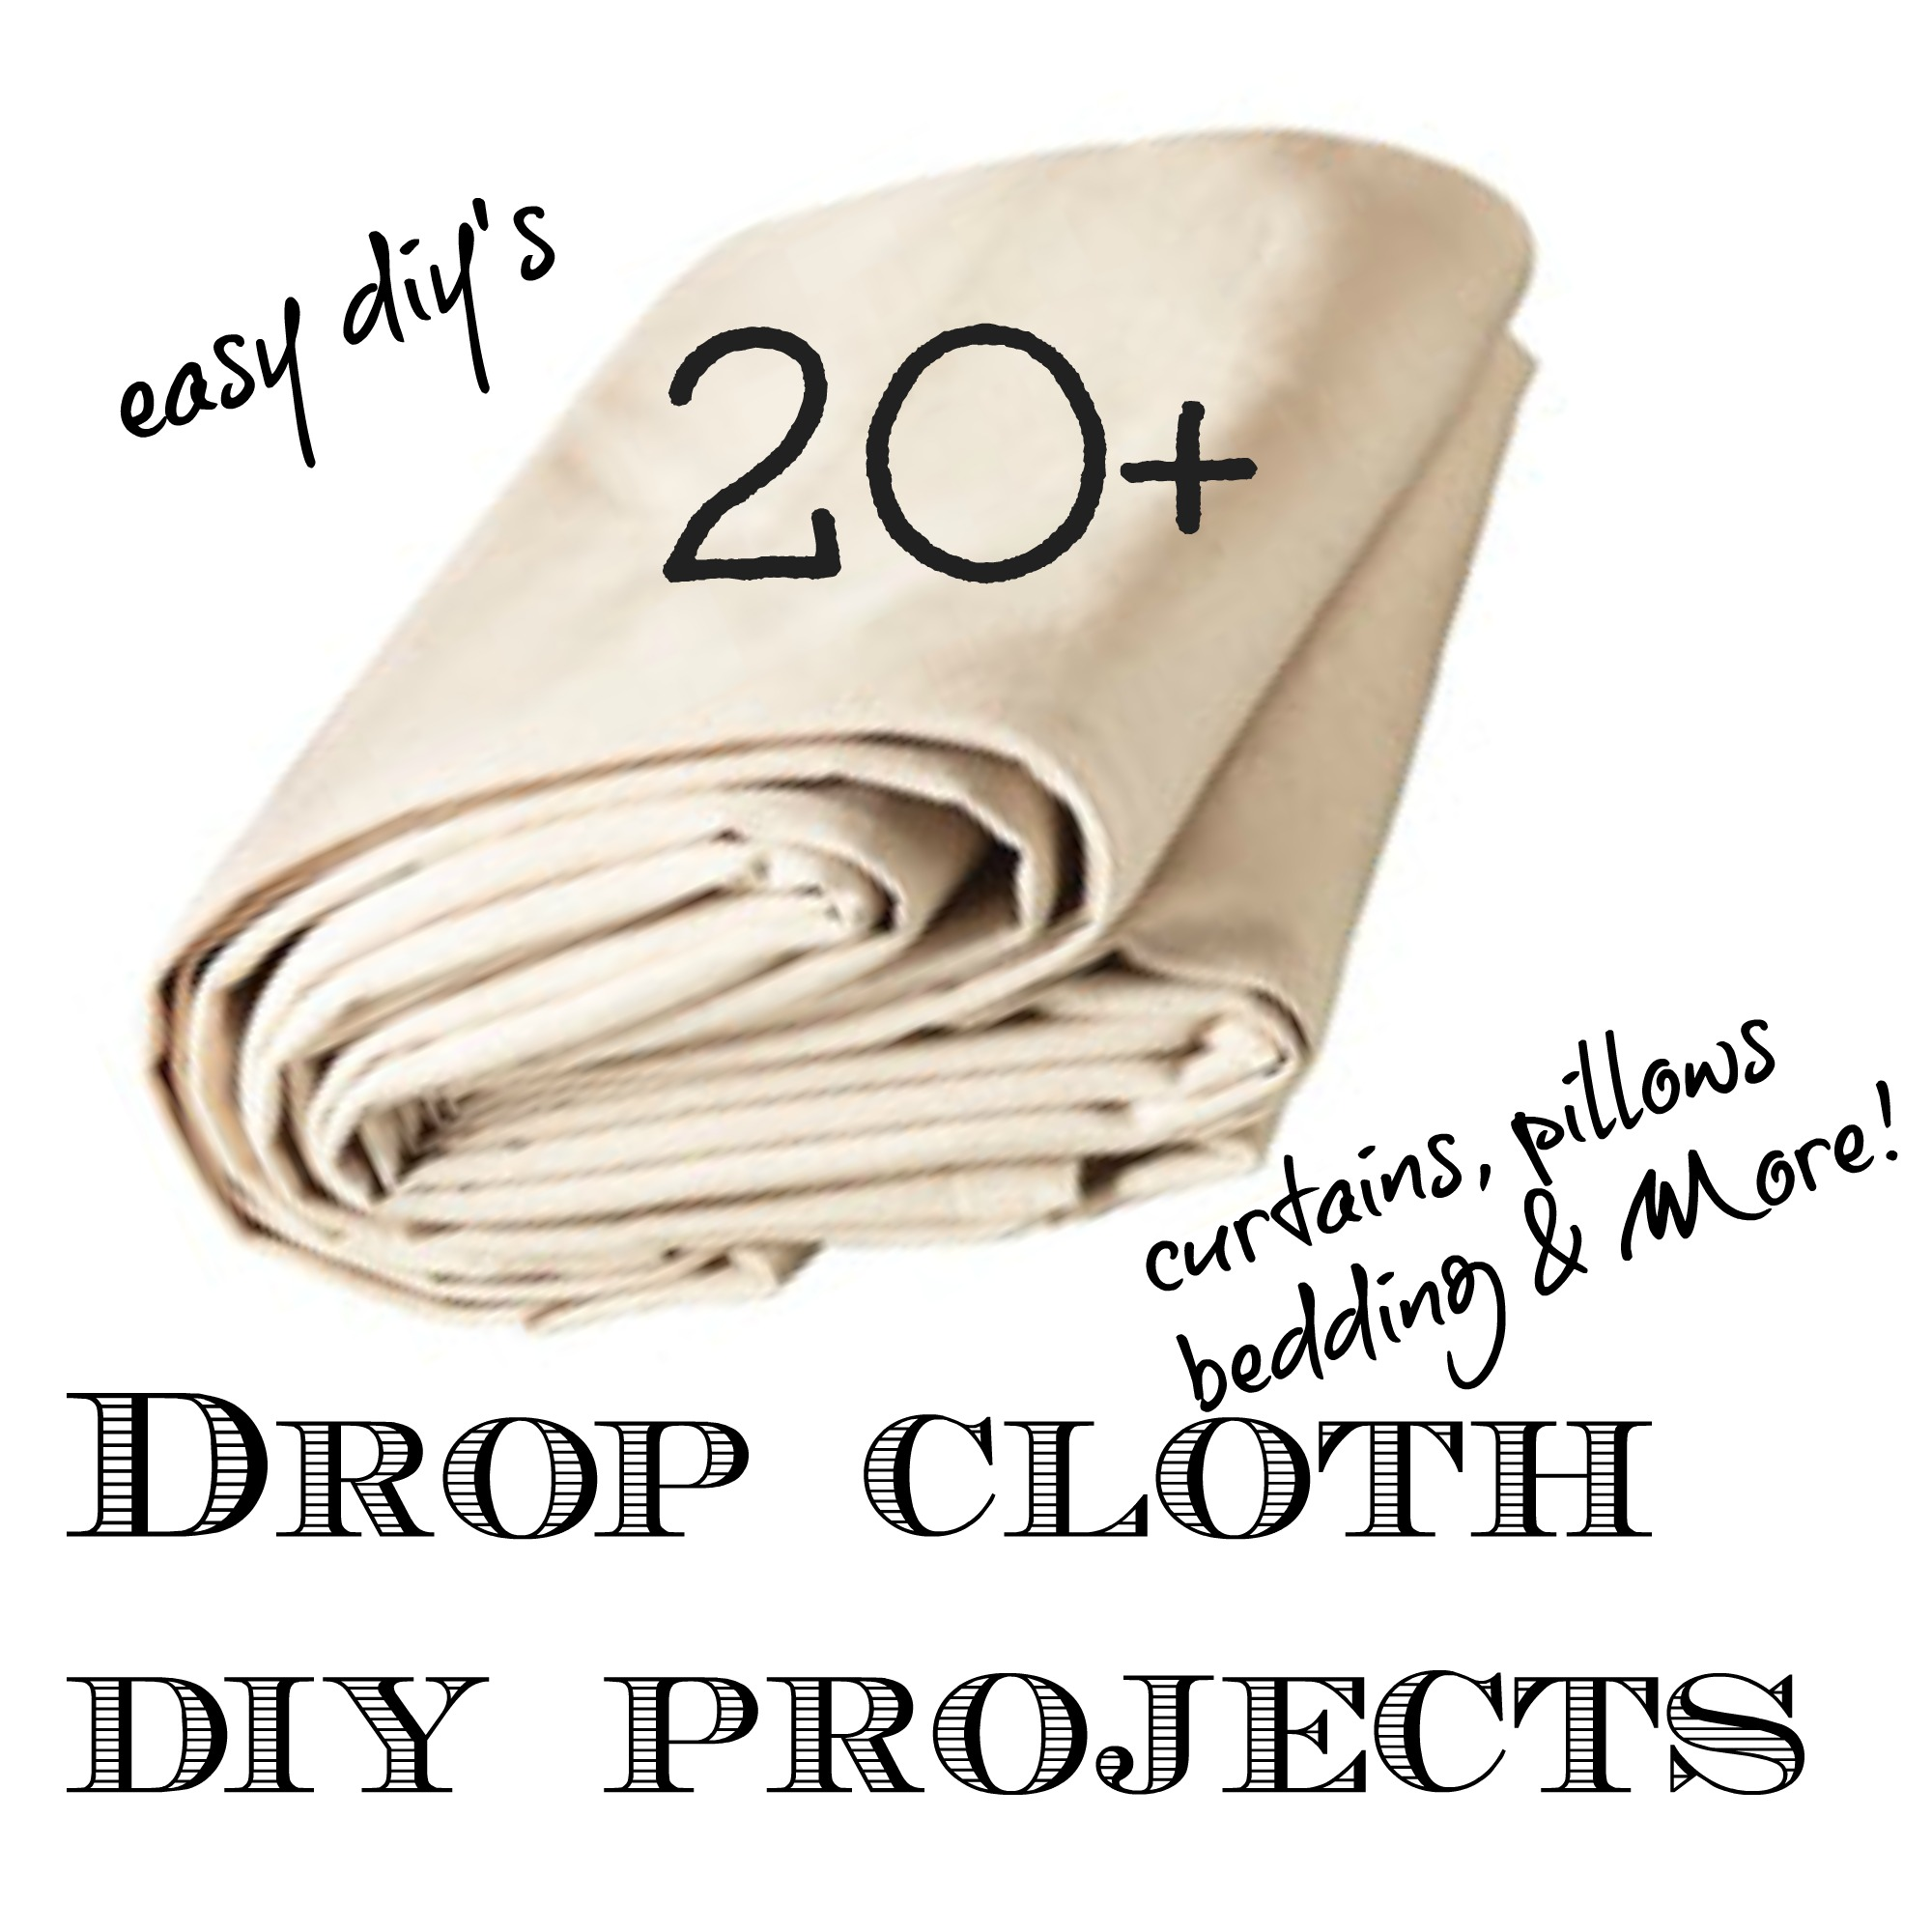 20-+-Drop-cloth-diy-projects Diy projects out of drop cloths